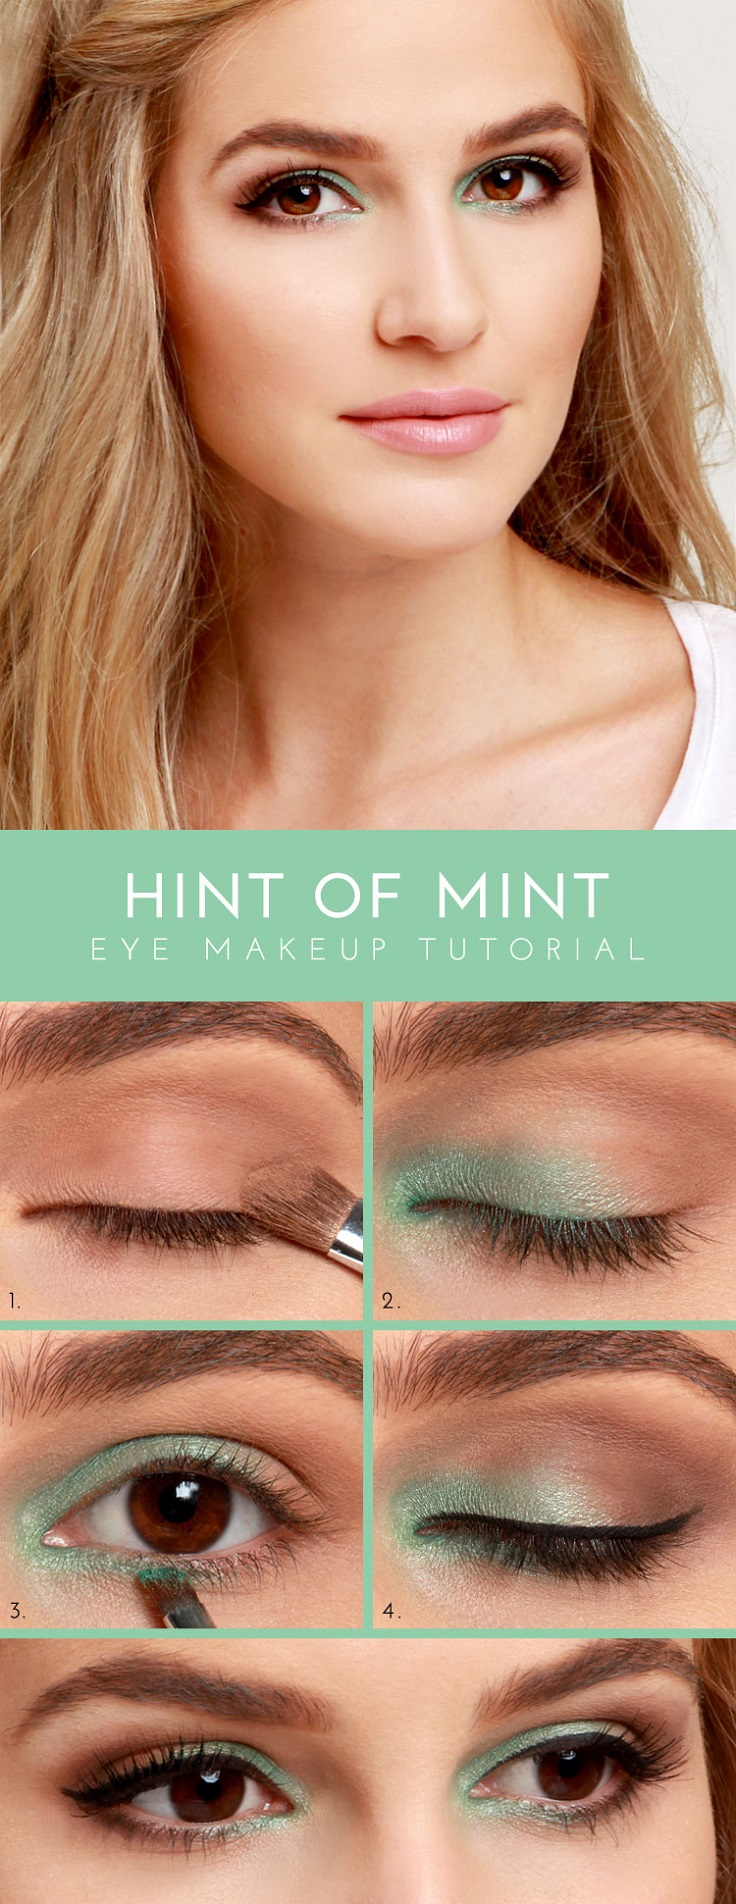 Top 10 Morning In-a-Rush Makeup Tutorials